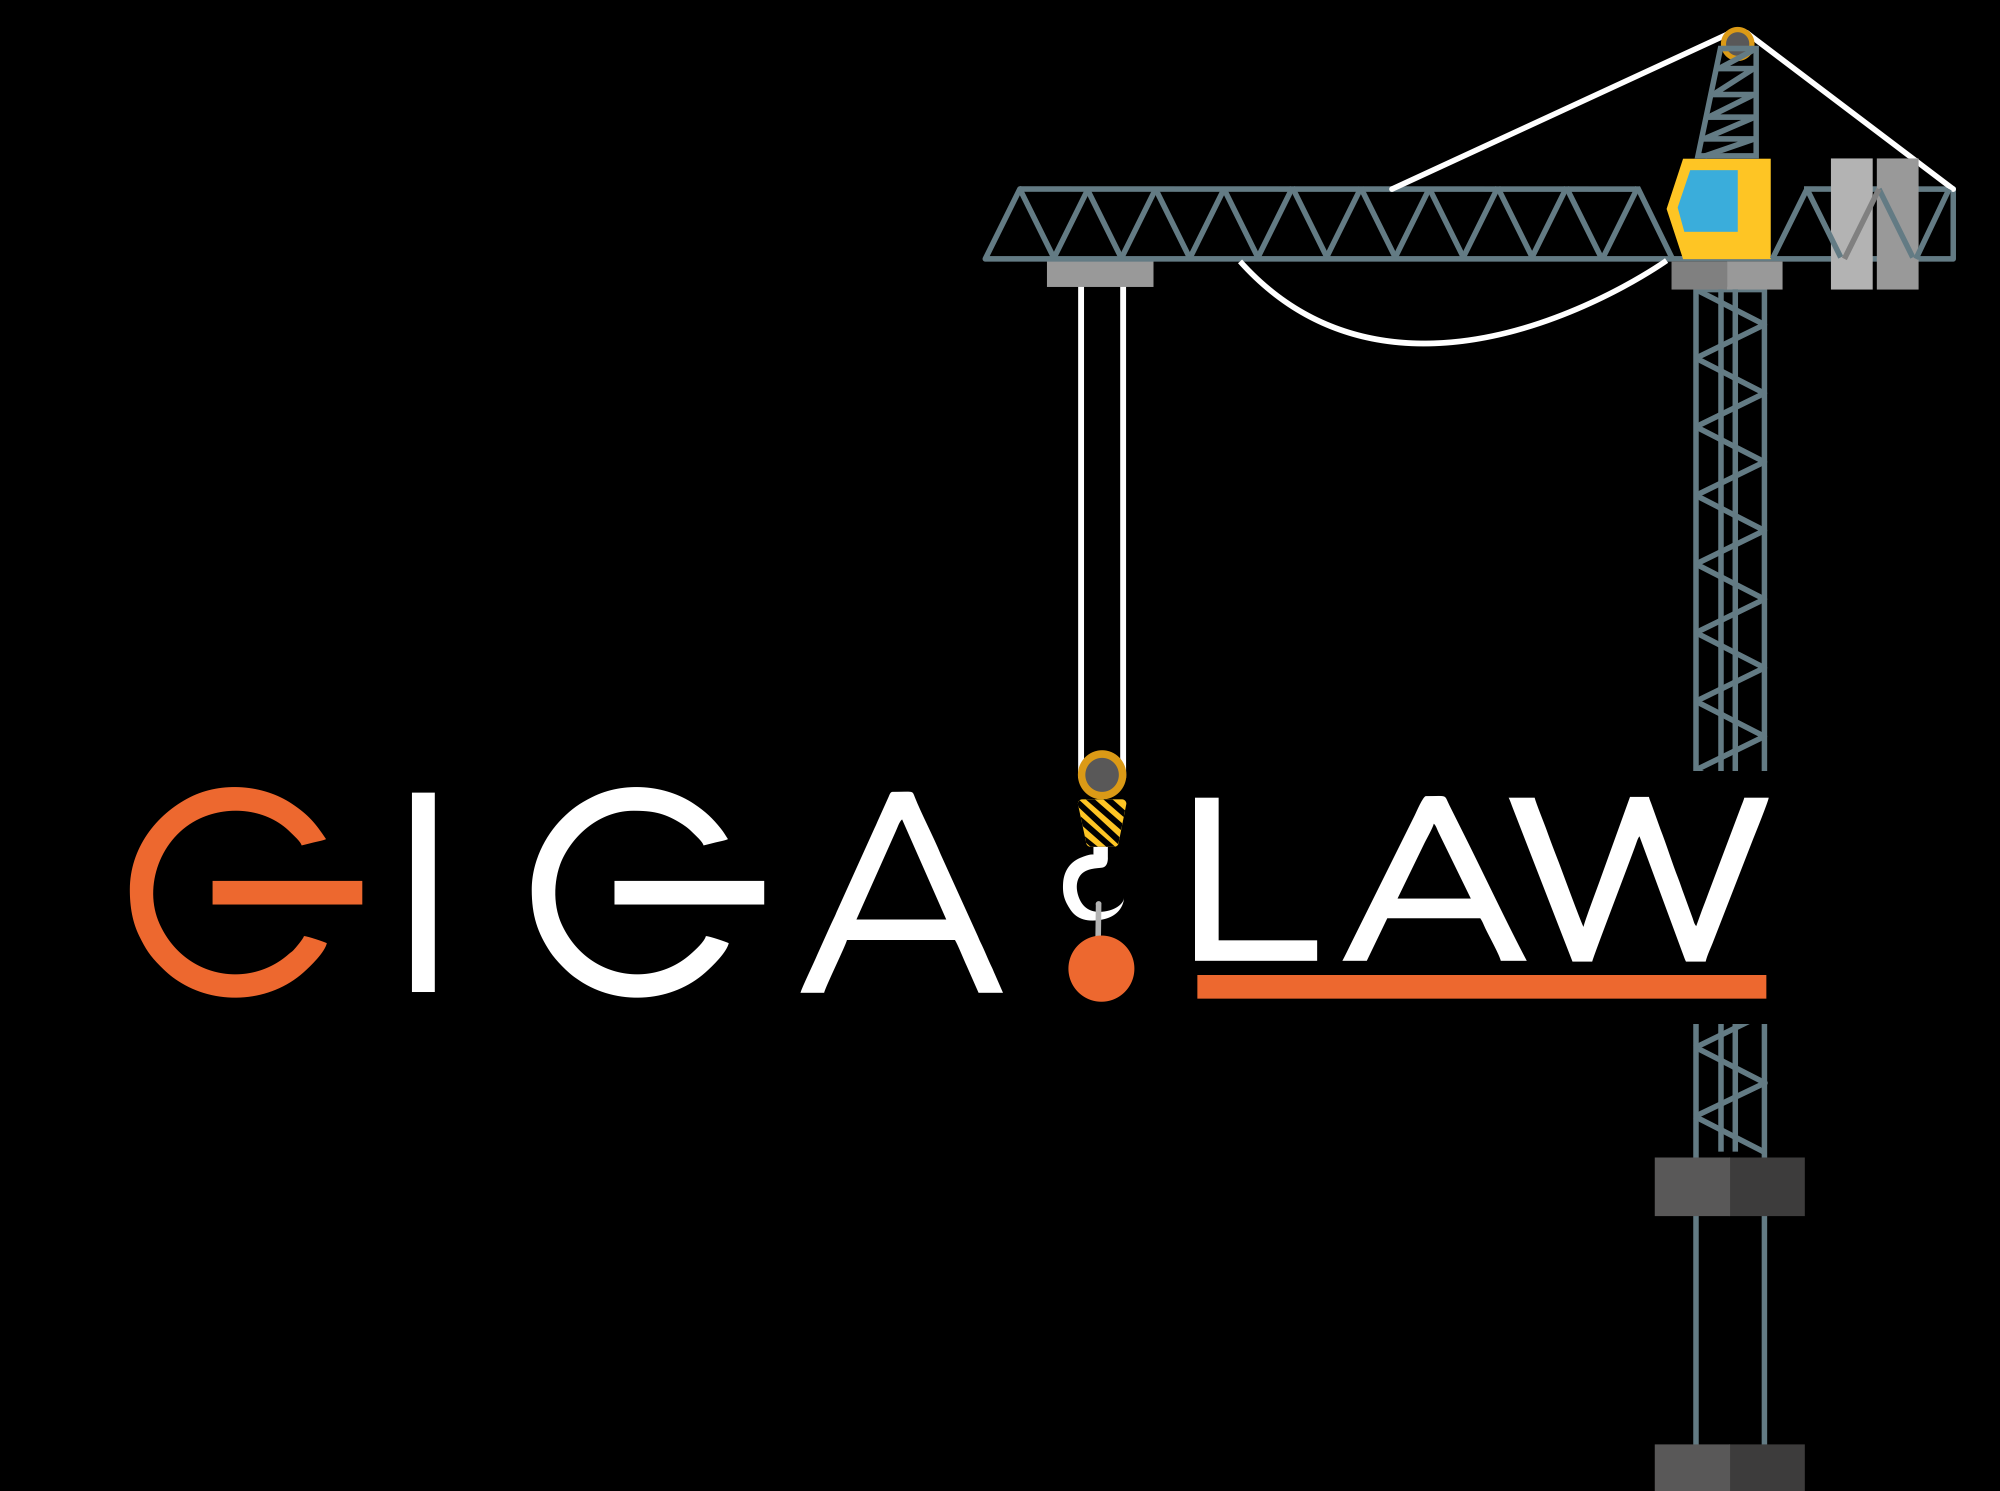 GigaLaw